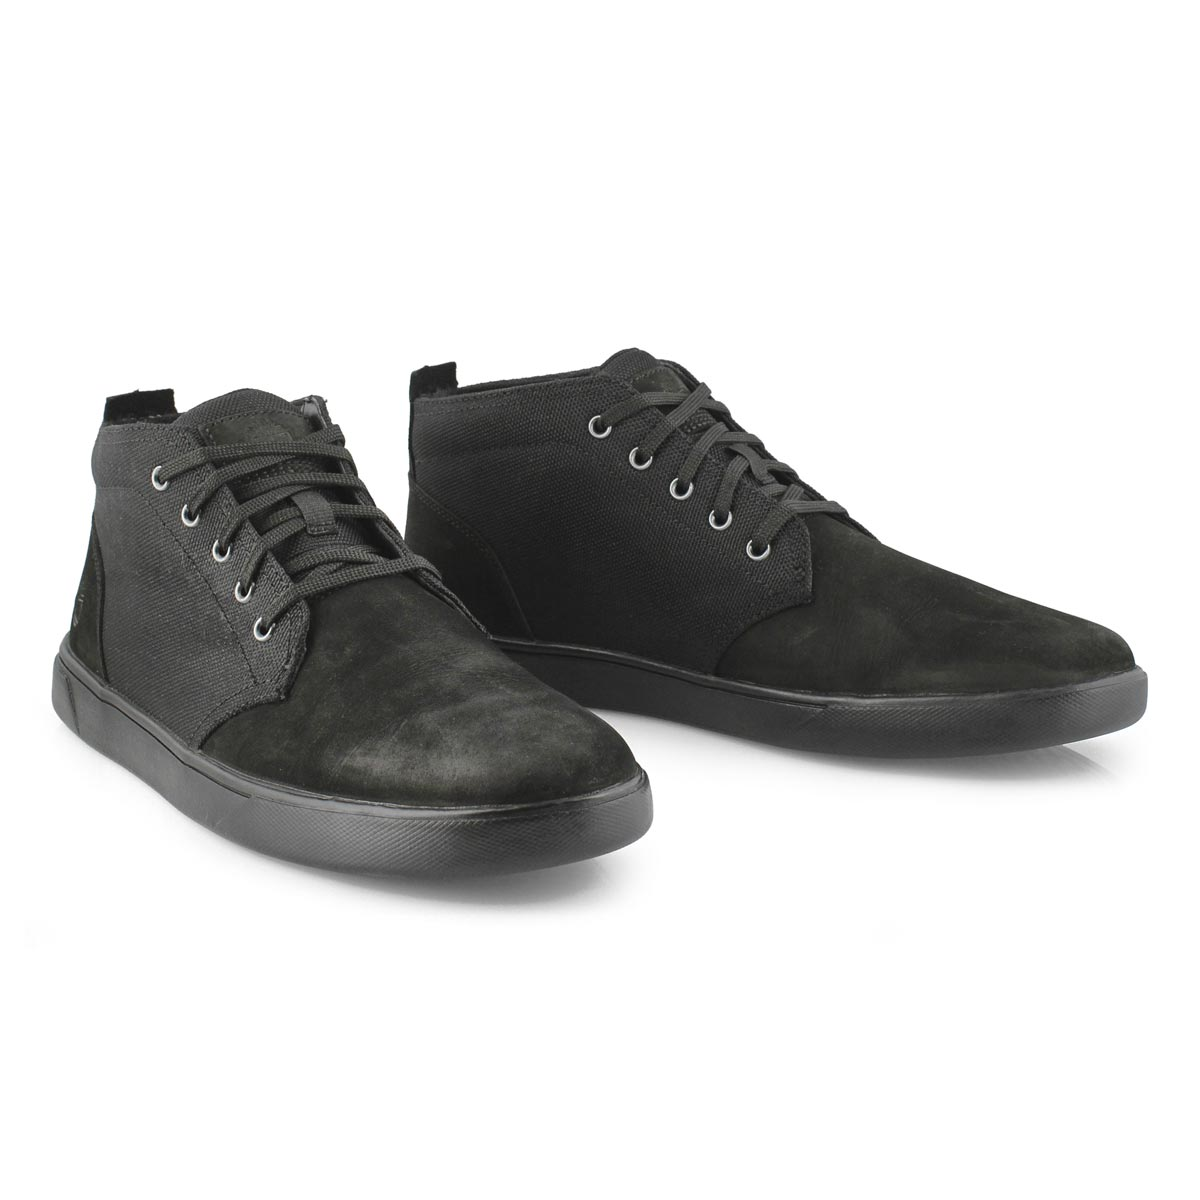 Mns Groveton black chukka boot